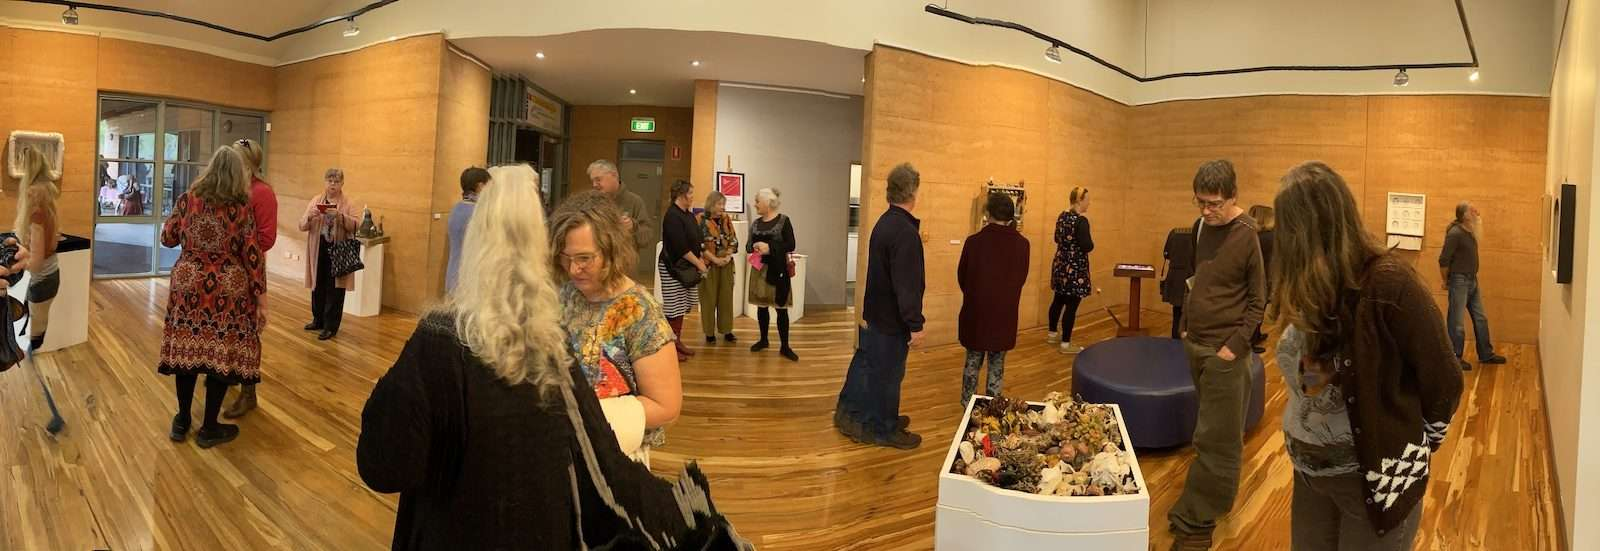 The Alternative Archive - MIx exhibition opening, Painted Tree Gallery (panorama), Southern Forest Art, Northcliffe